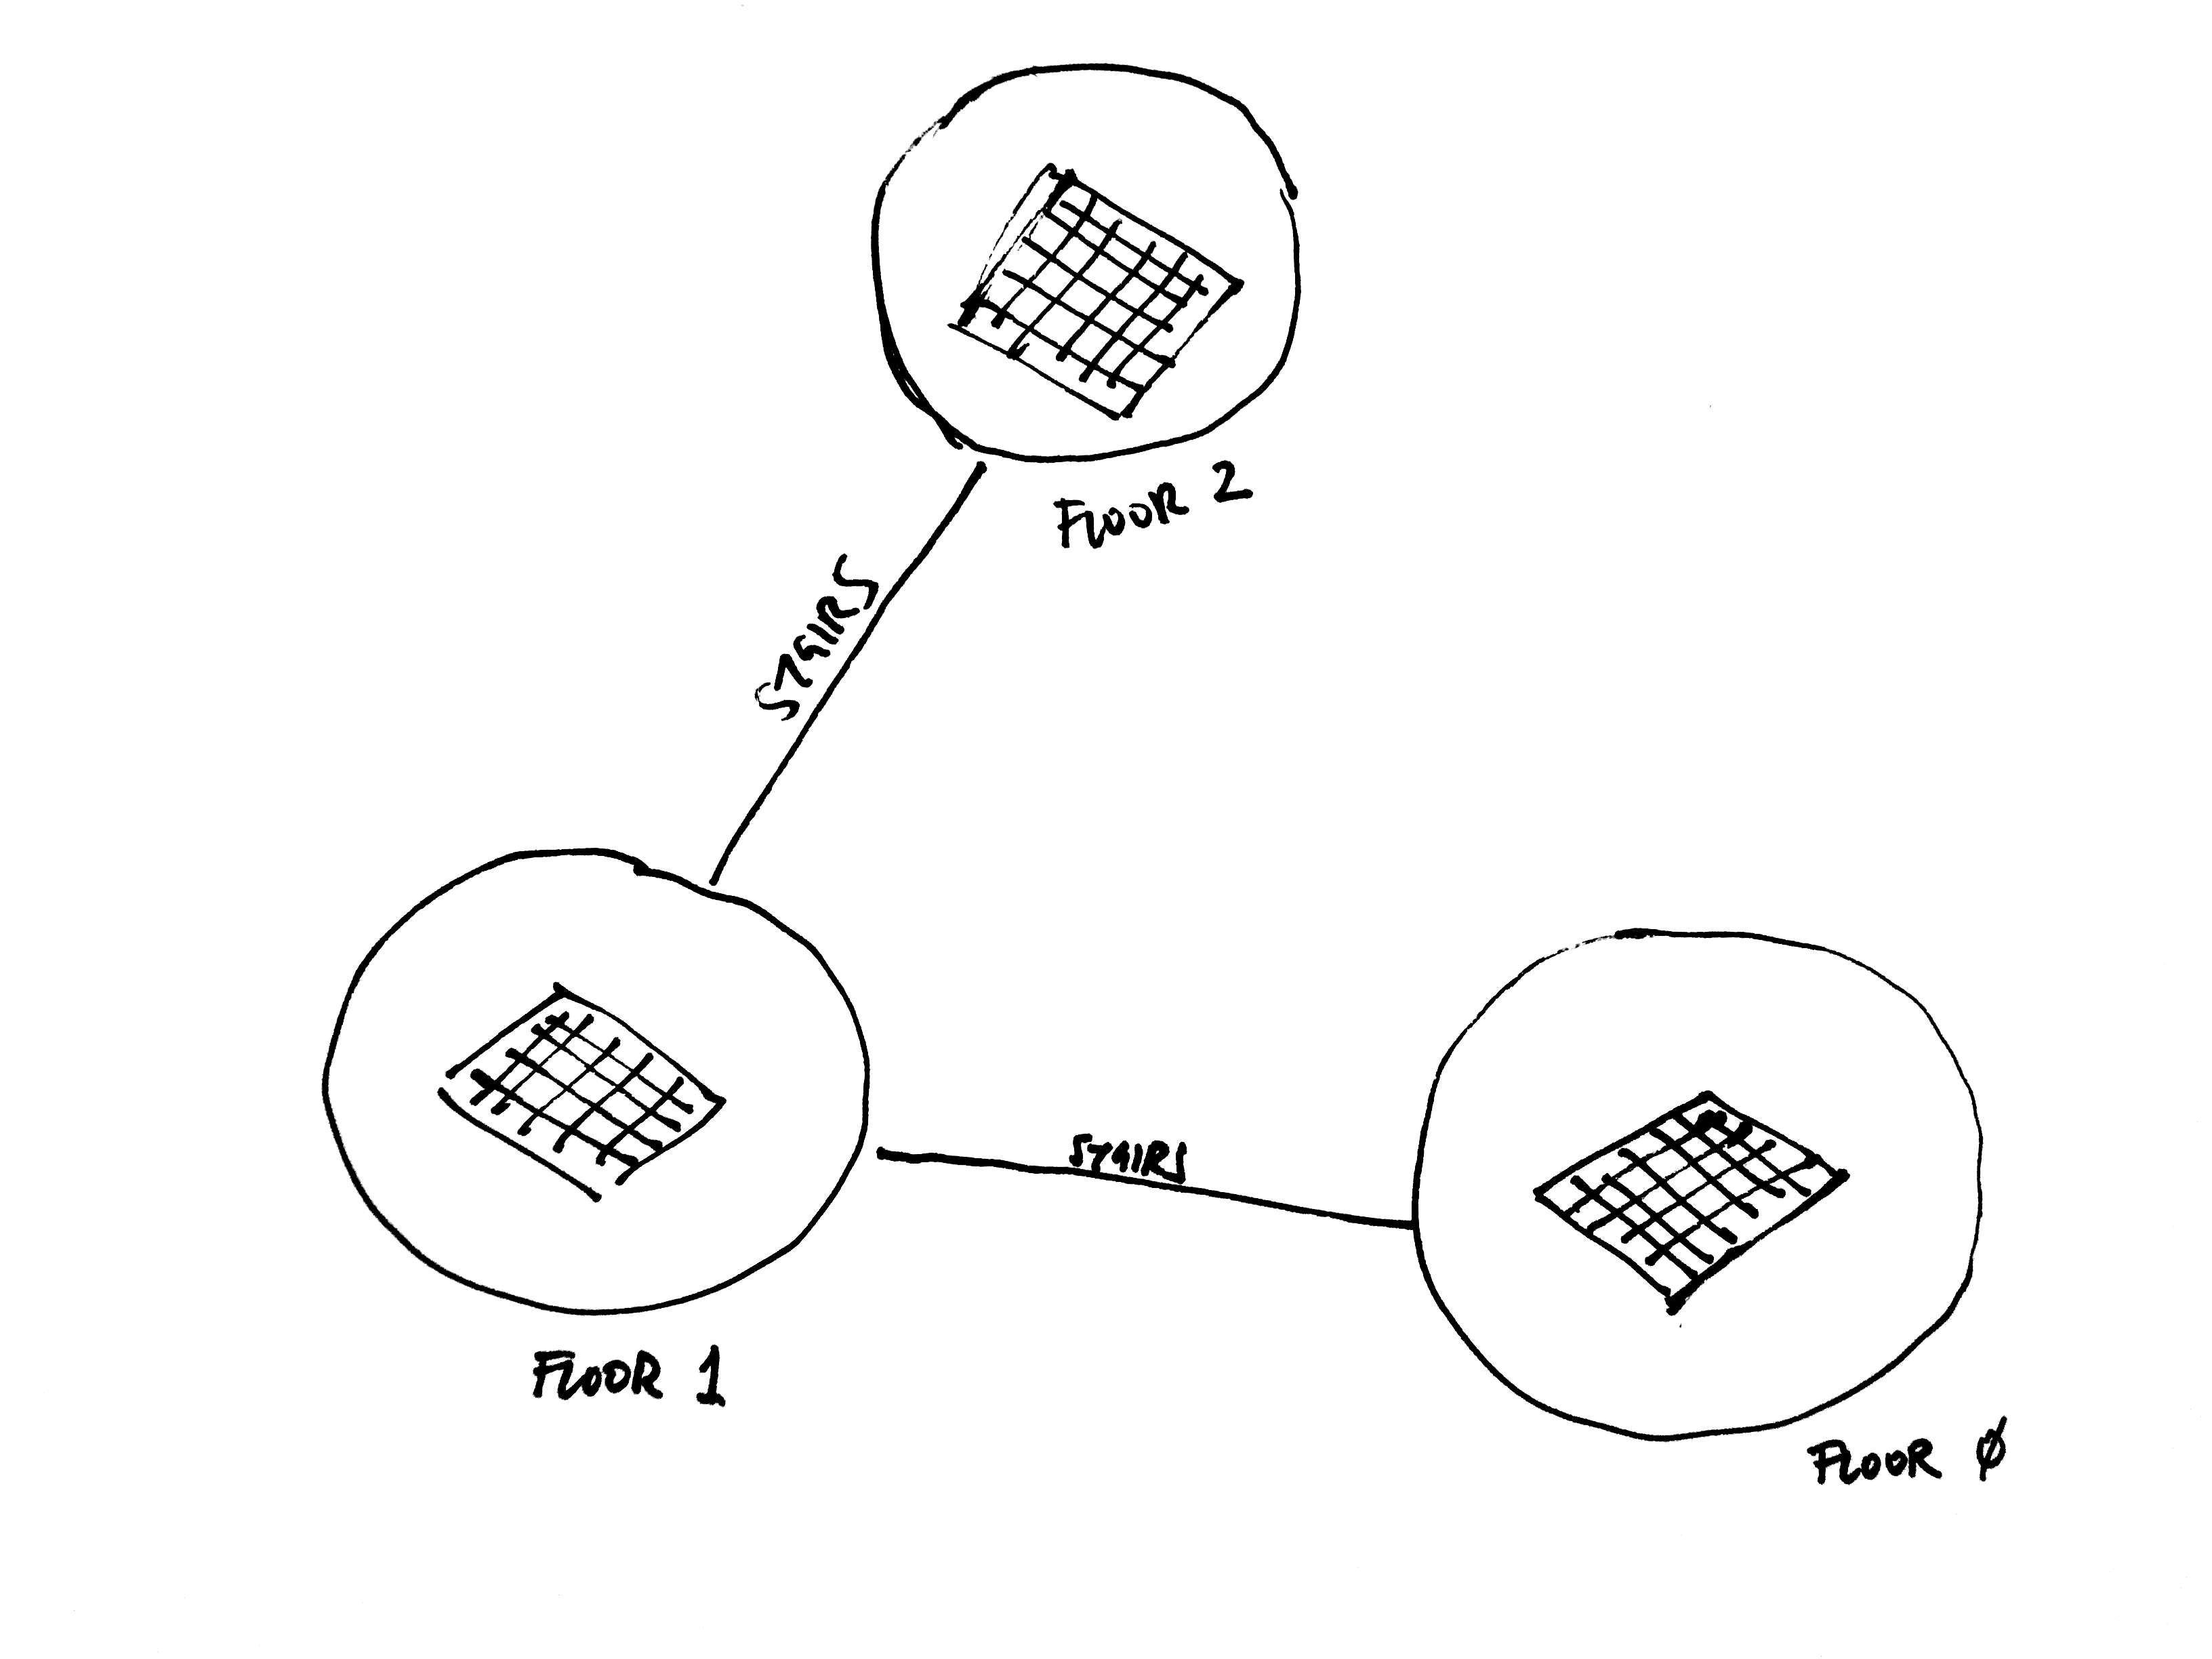 Building network example